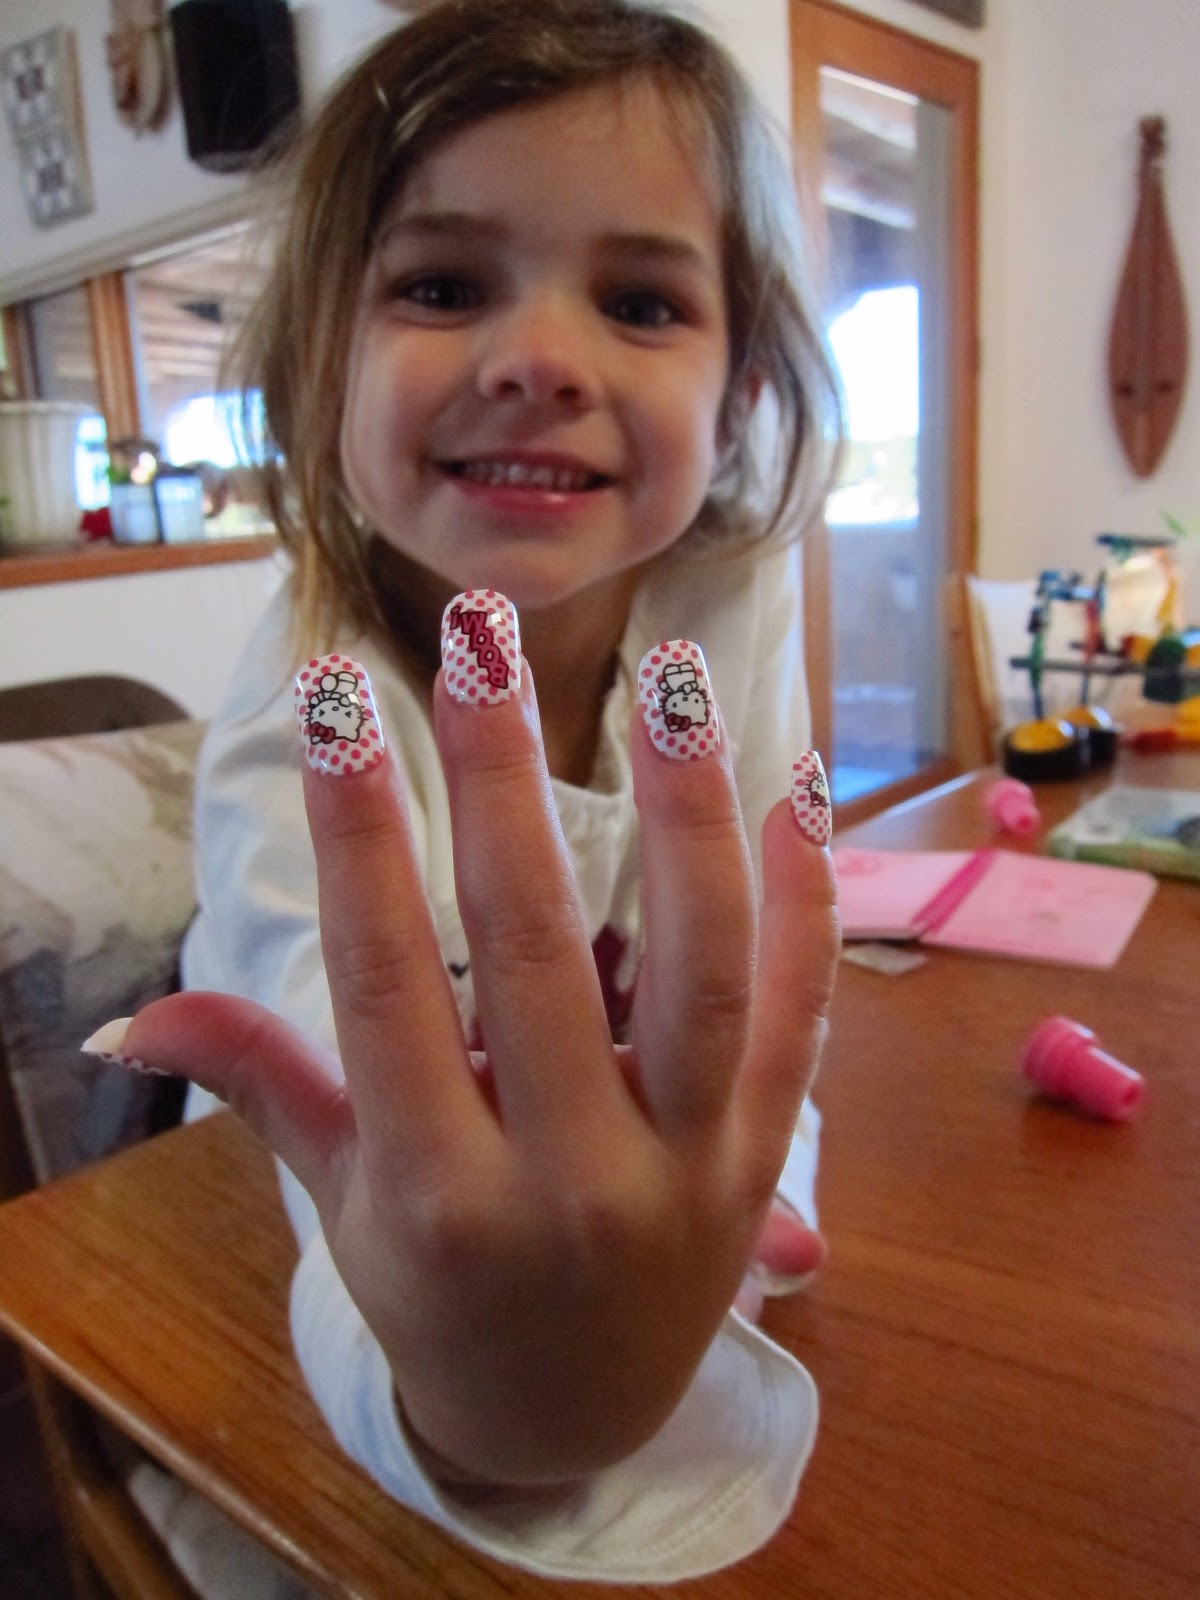 Fake nails for little girls - Clamart